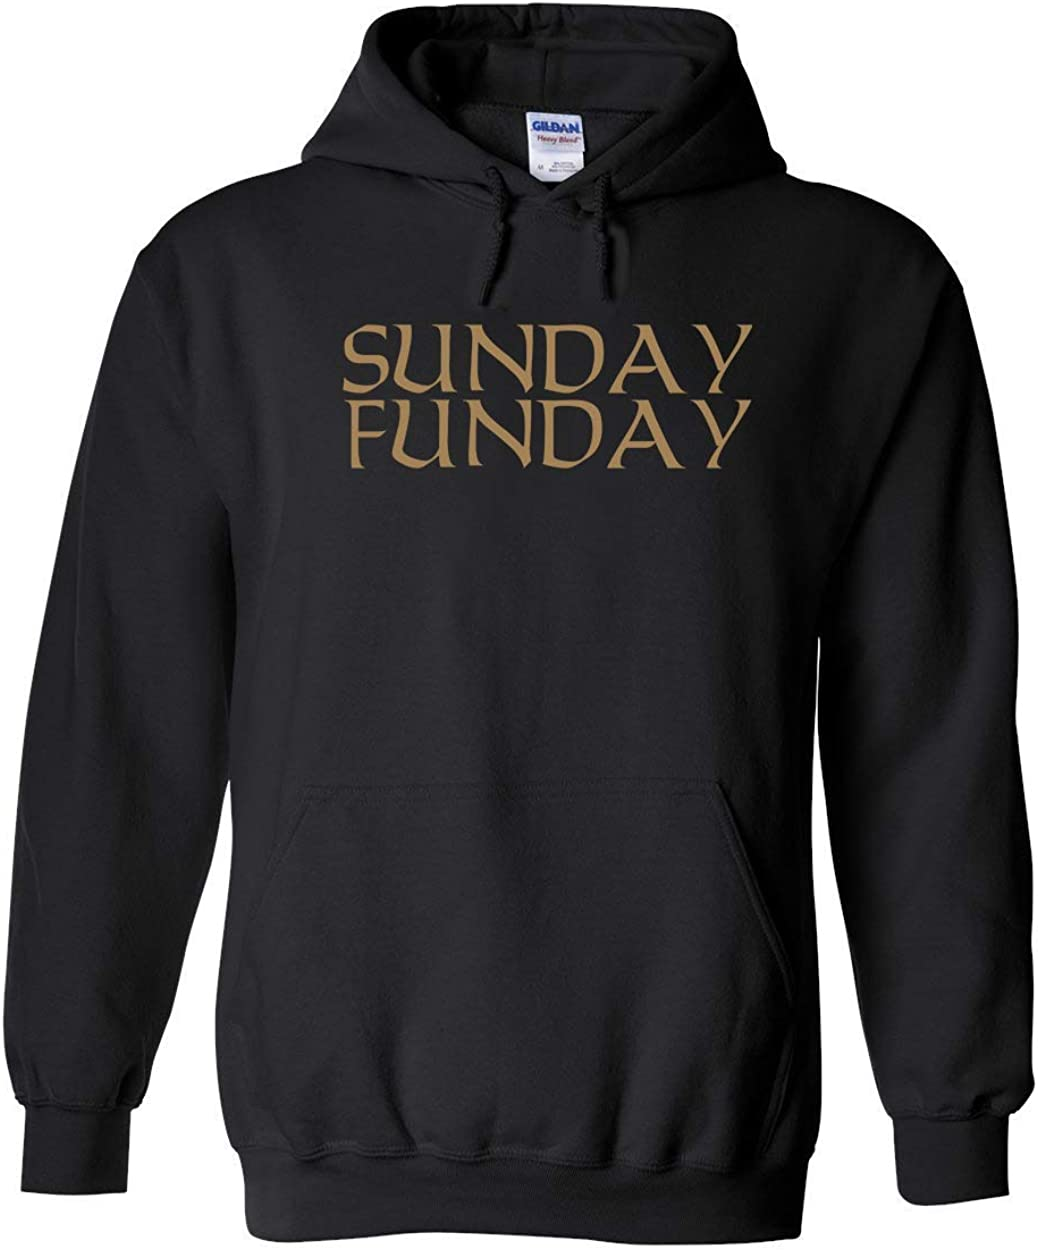 Americas Finest Apparel New Orleans Sunday Funday Hoodie